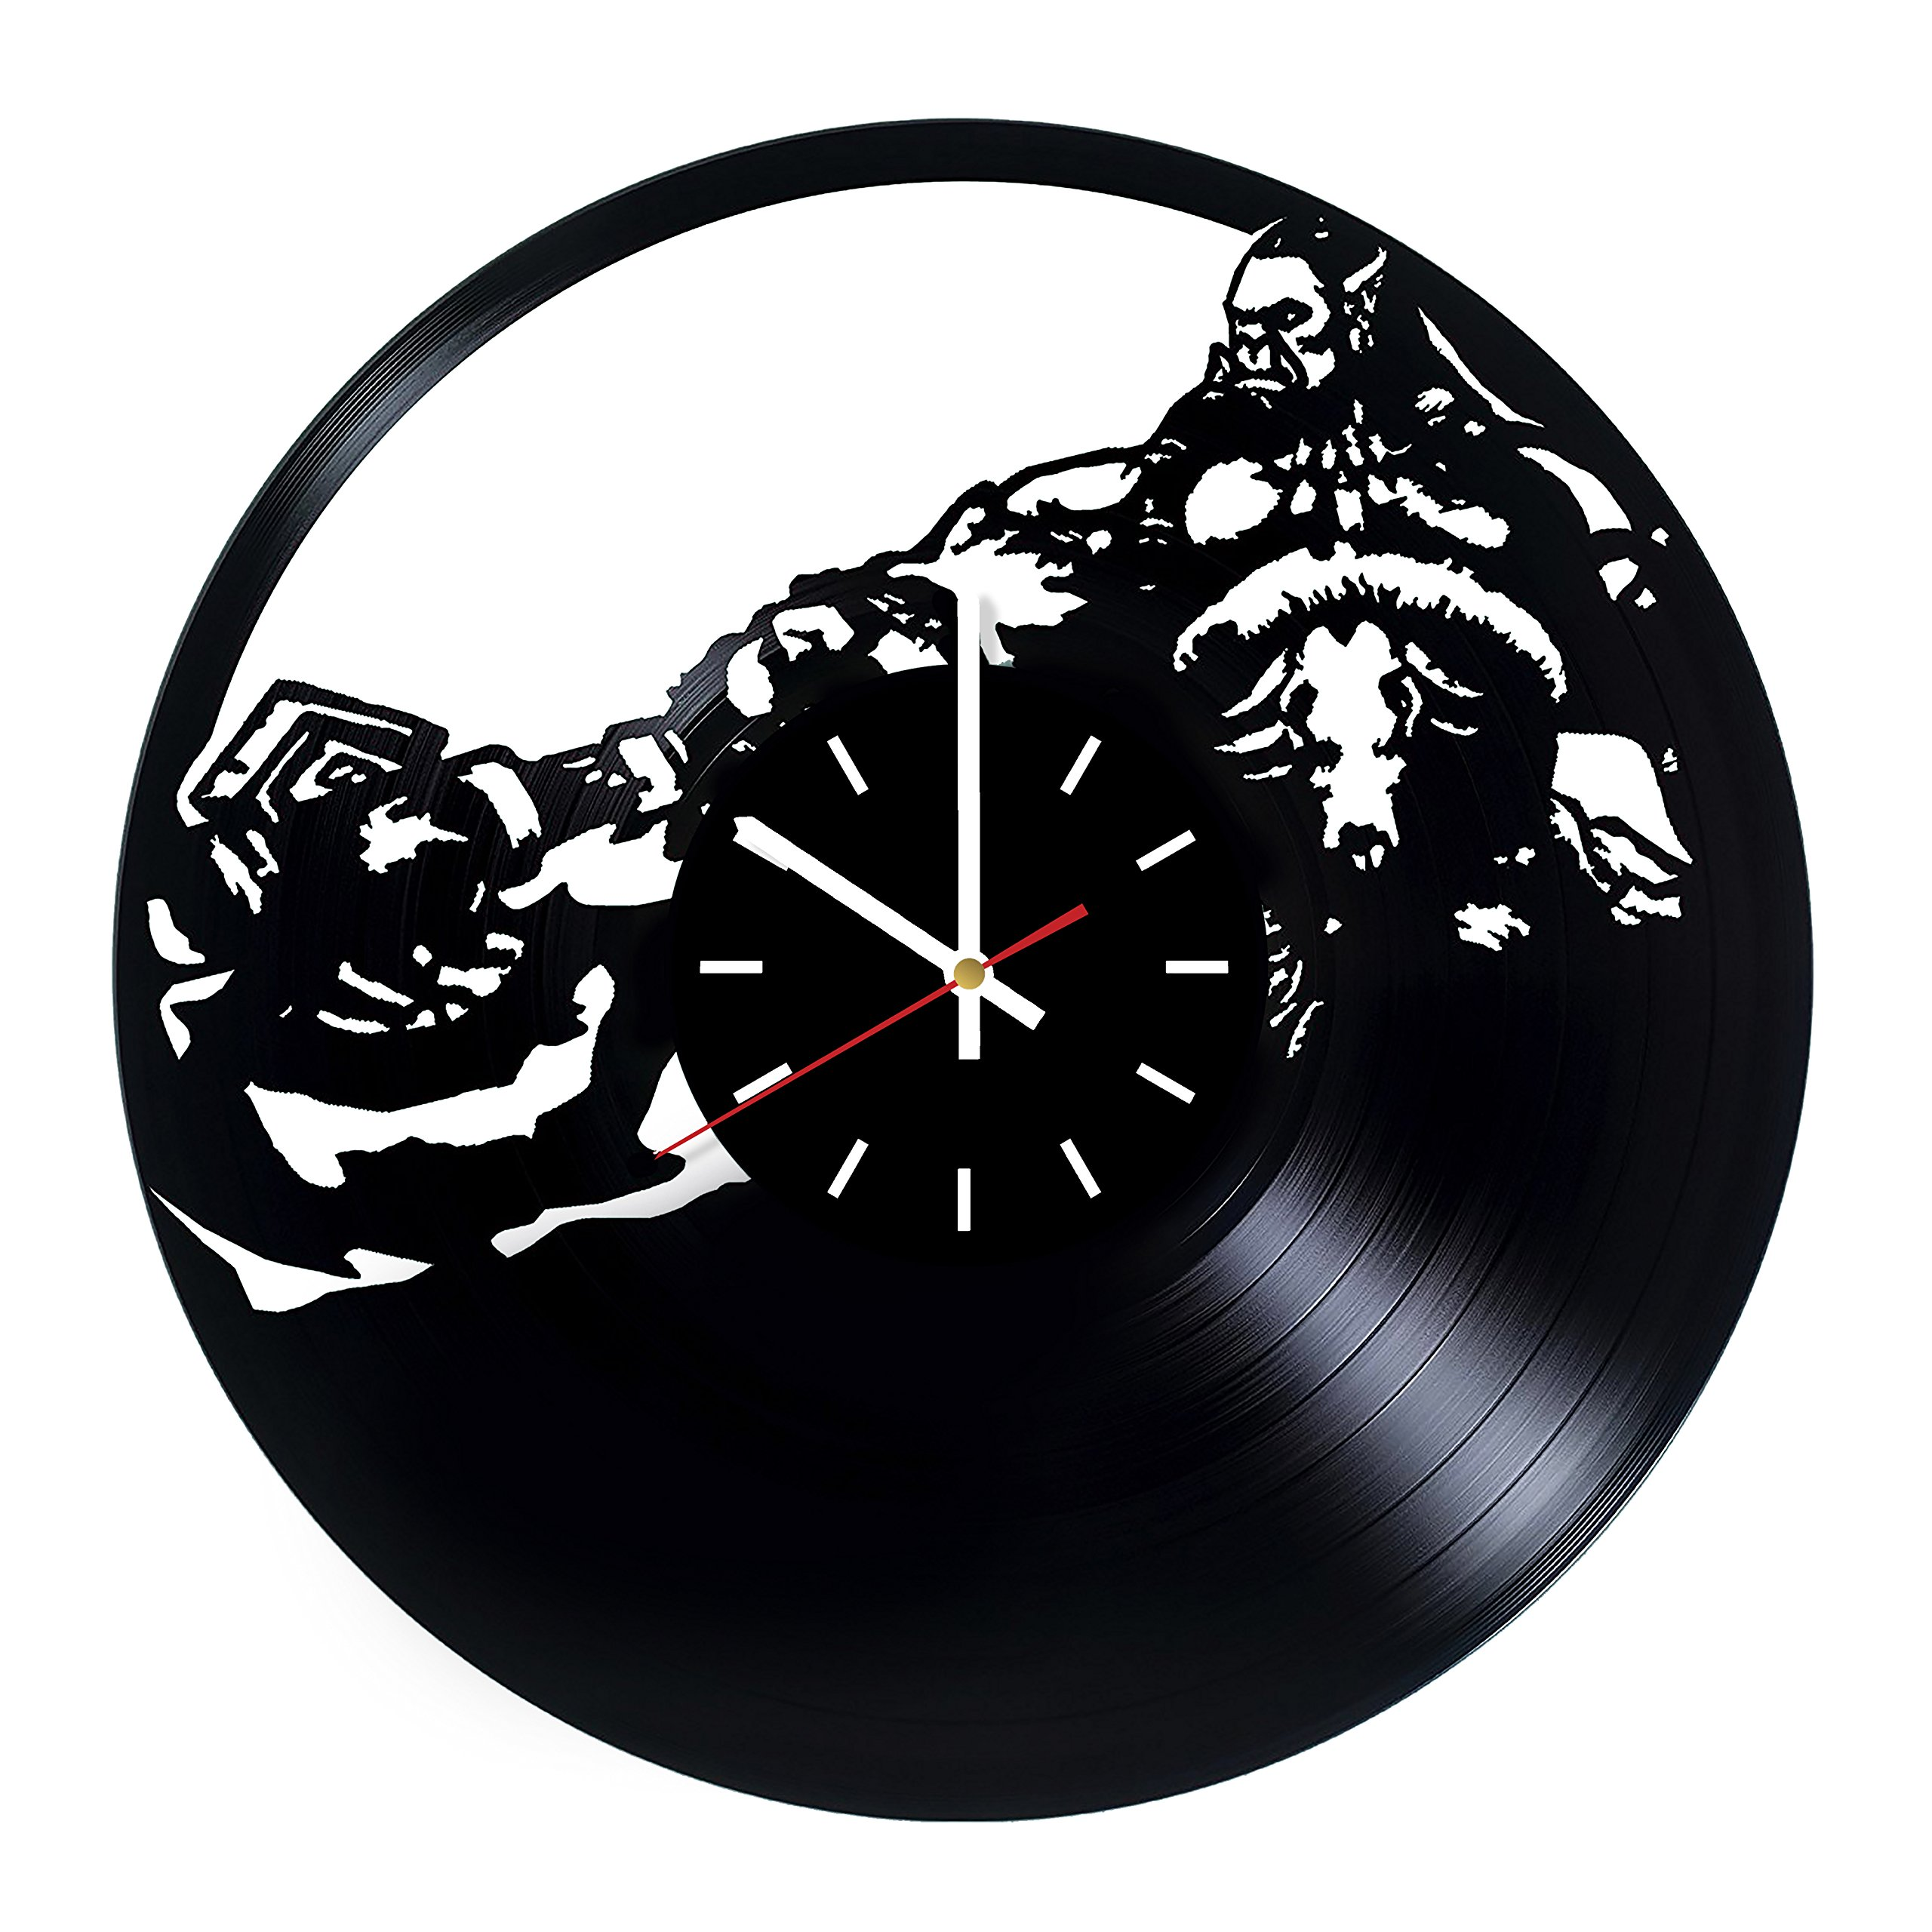 Everyday Arts World of Warcraft Alliance Design Vinyl Record Wall Clock - Get Unique Bedroom or Garage Wall Decor - Gift Ideas for Friends, Brother - Darth Vader Unique Modern Art